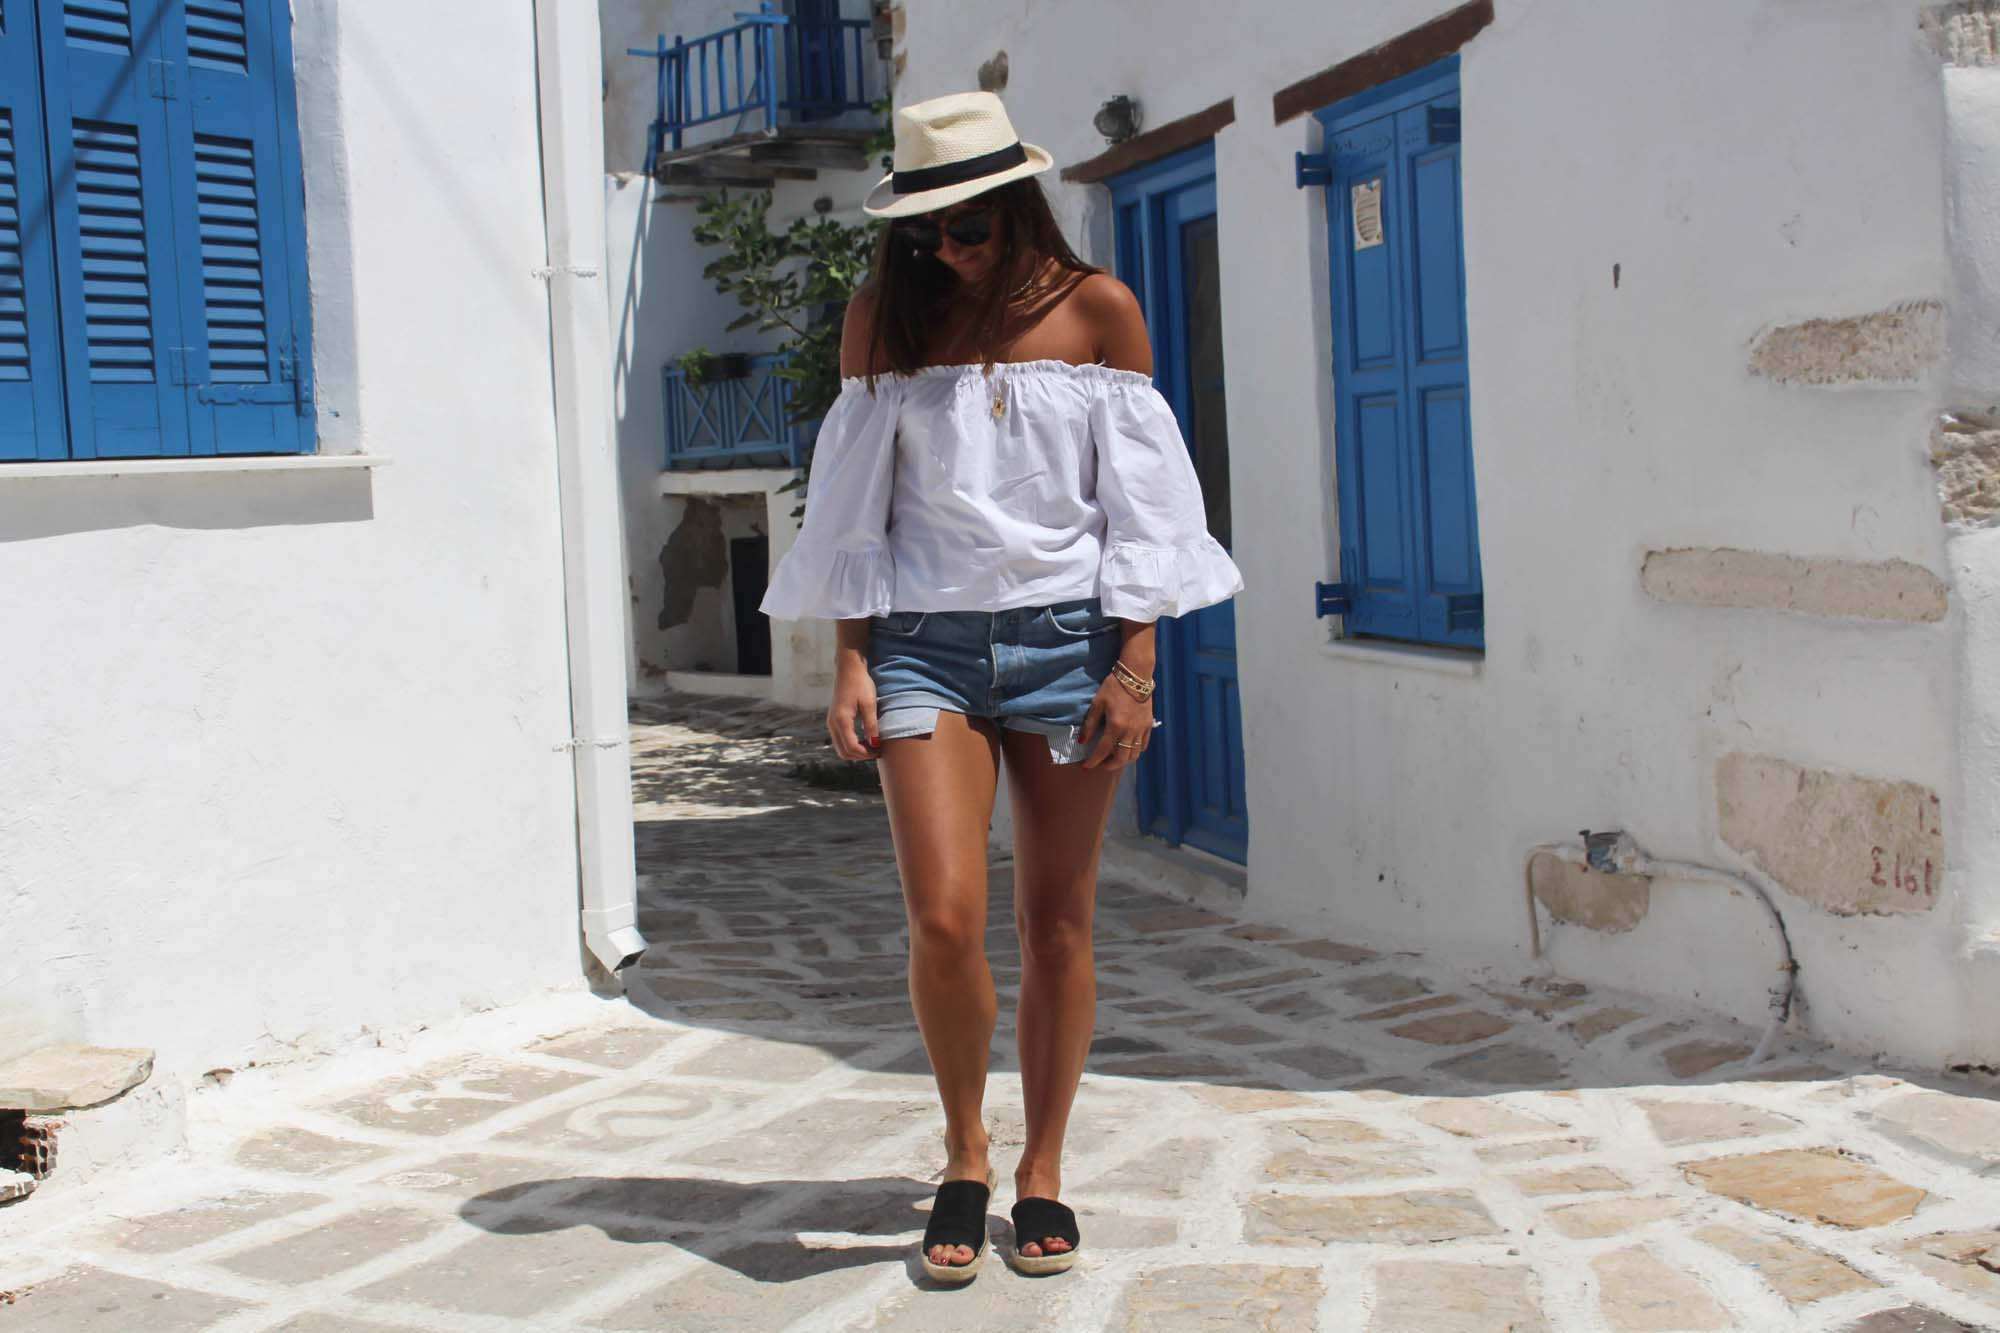 look-greece-paros-linstantflo-13-sur-16